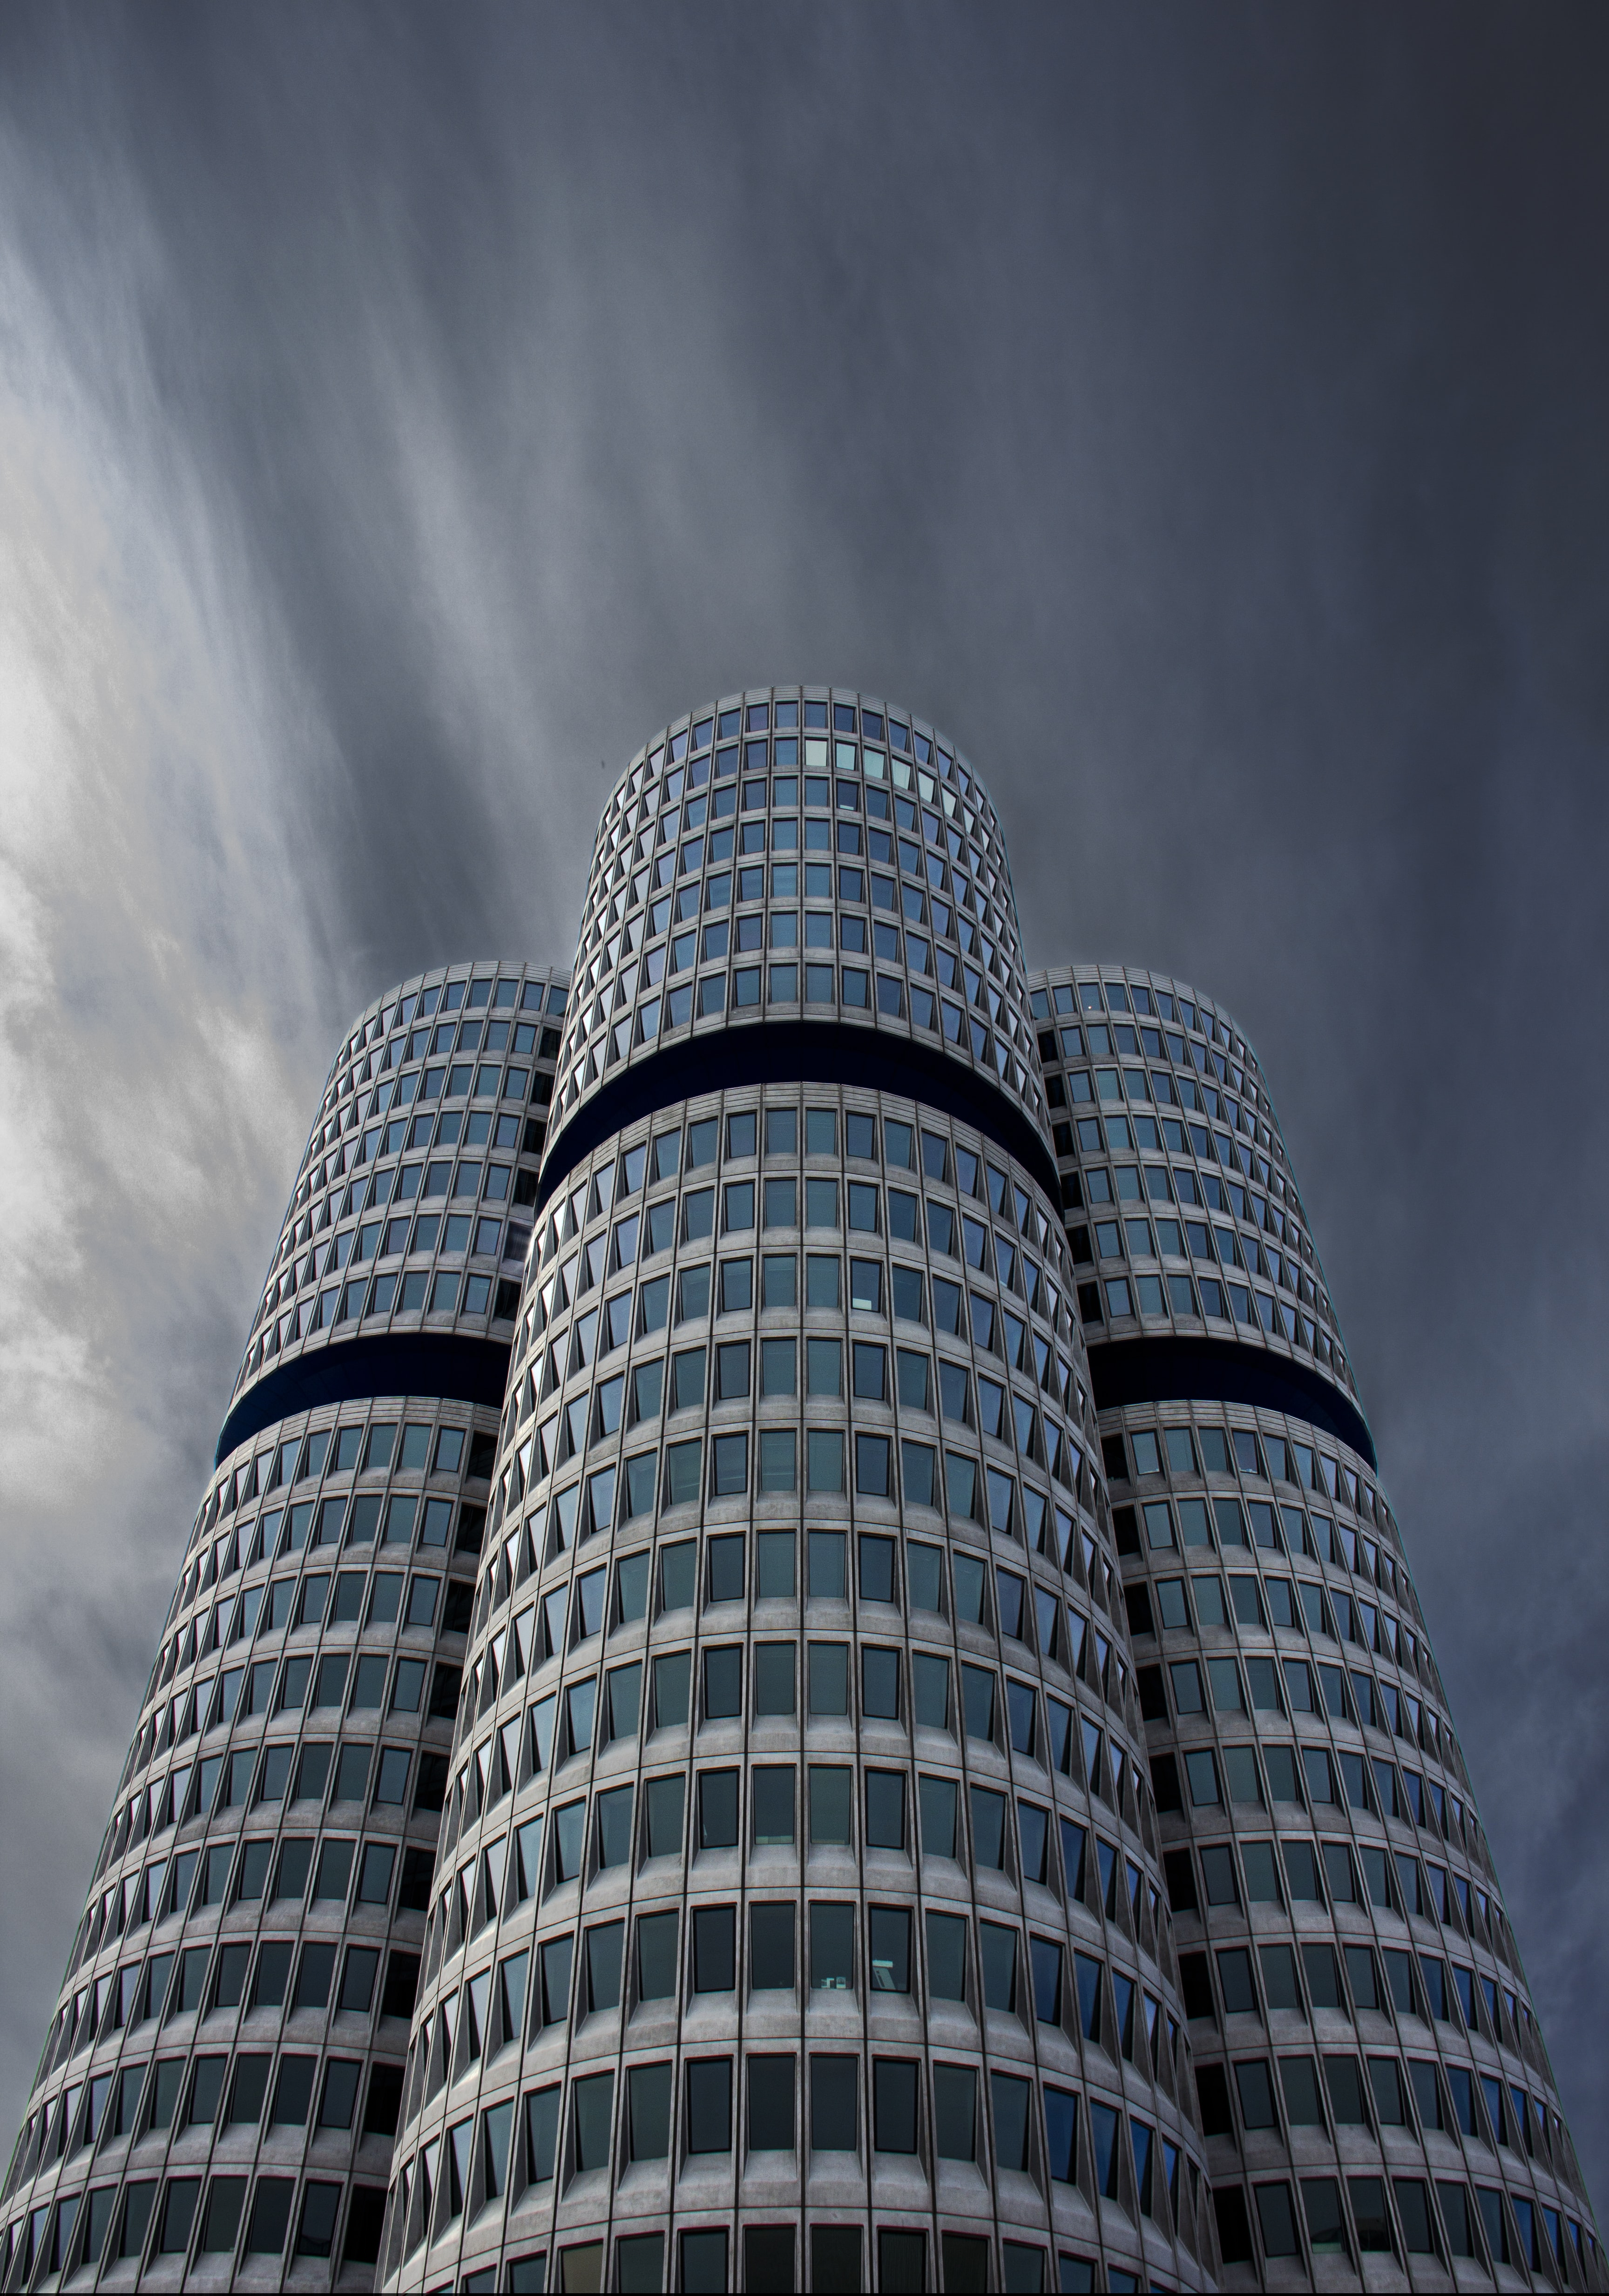 low angle view photography of gray building